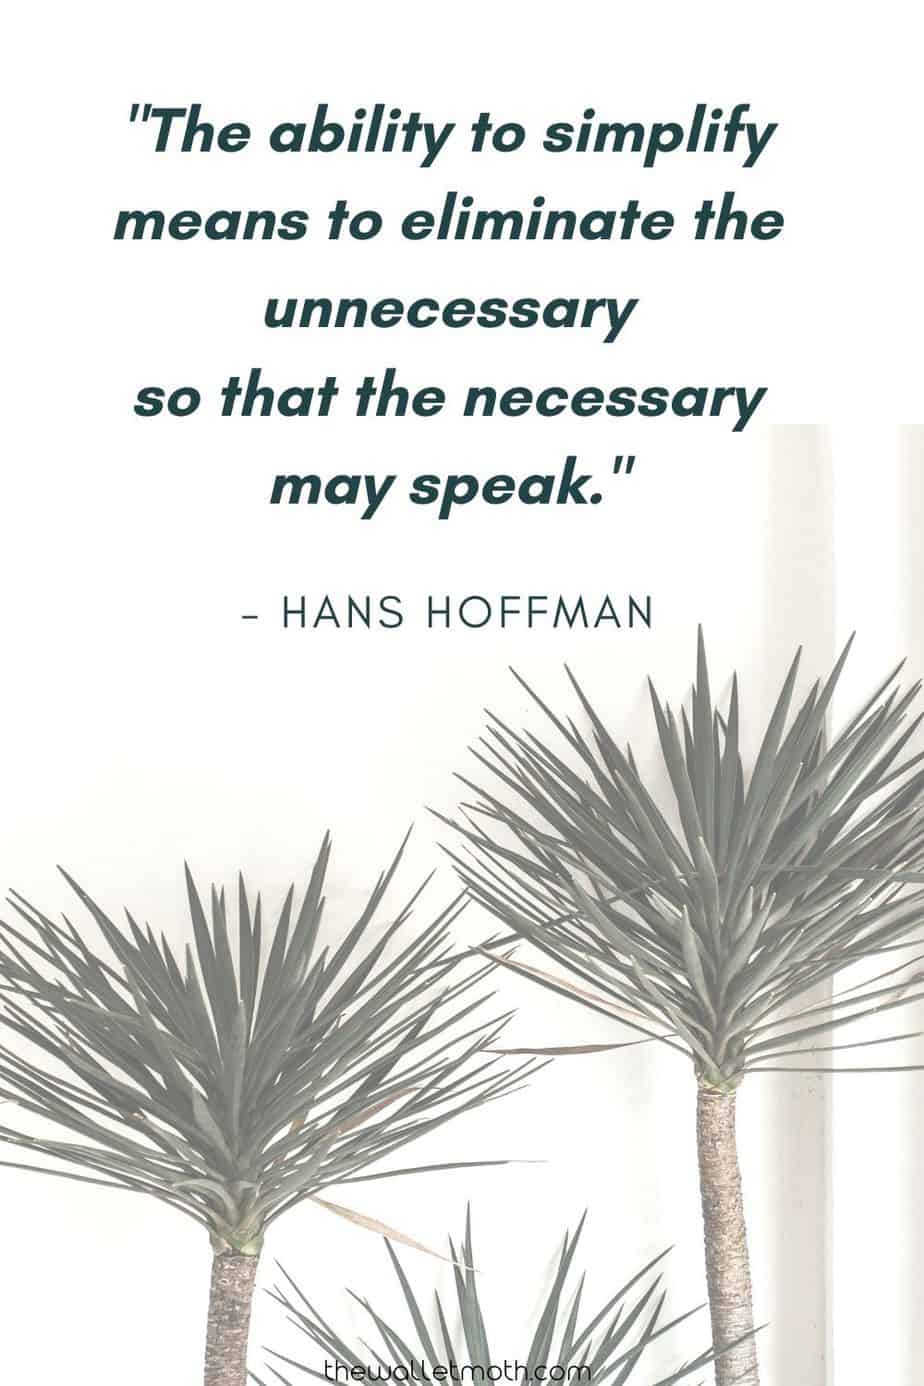 """The ability to simplify means to eliminate the unnecessary so that the necessary may speak."" - Hans Hoffman"